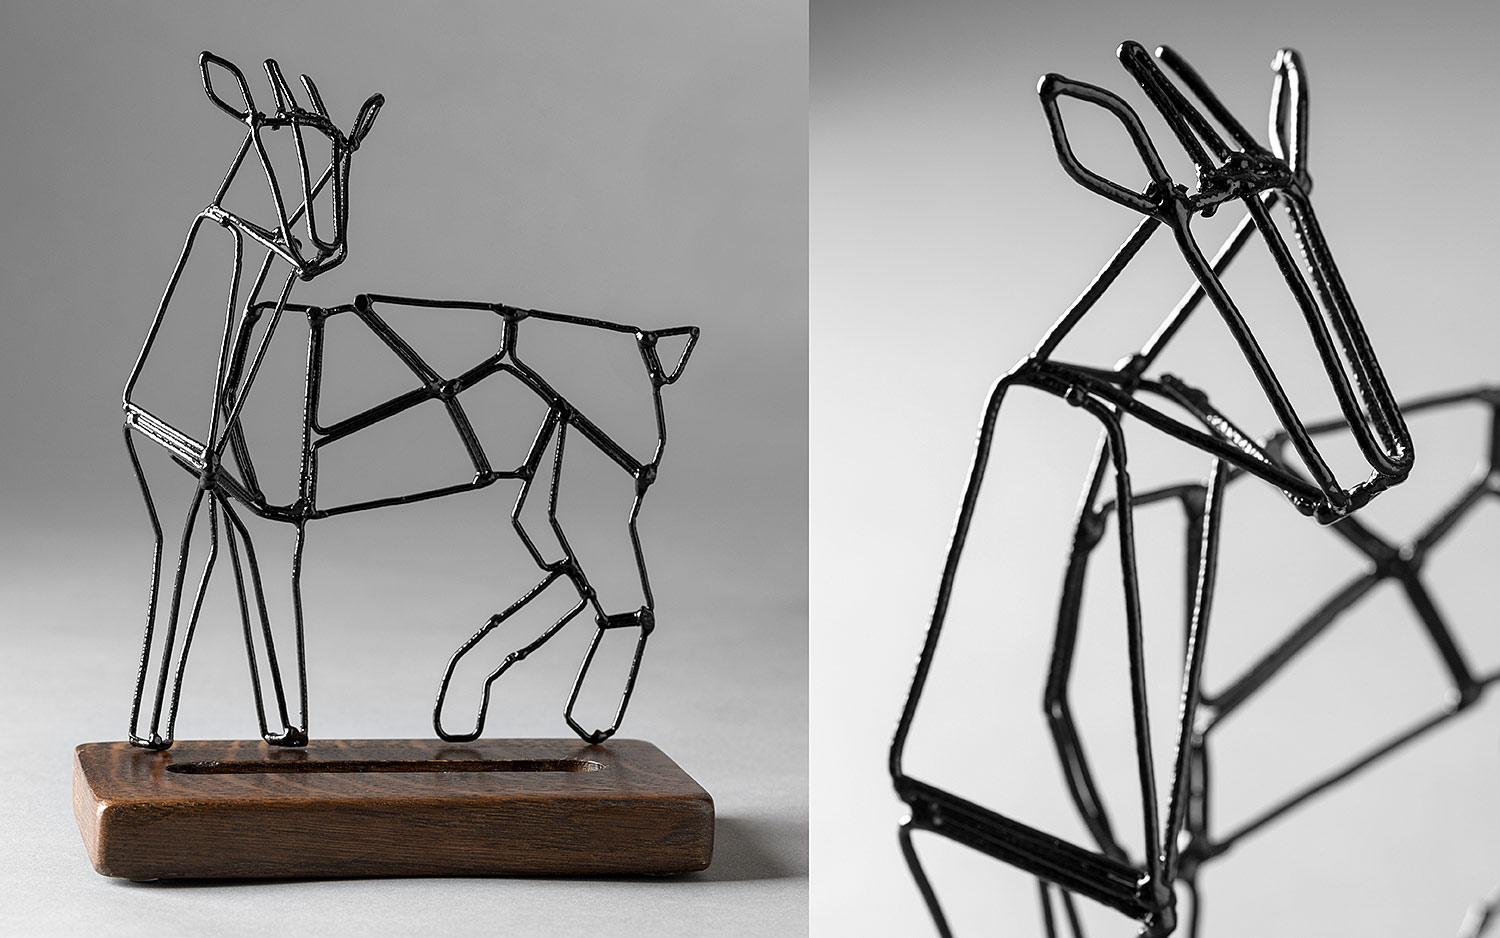 Handmade paper stand in the shape of a goat. Wooden base and metal goat. Polygonal figure made of metal bars.